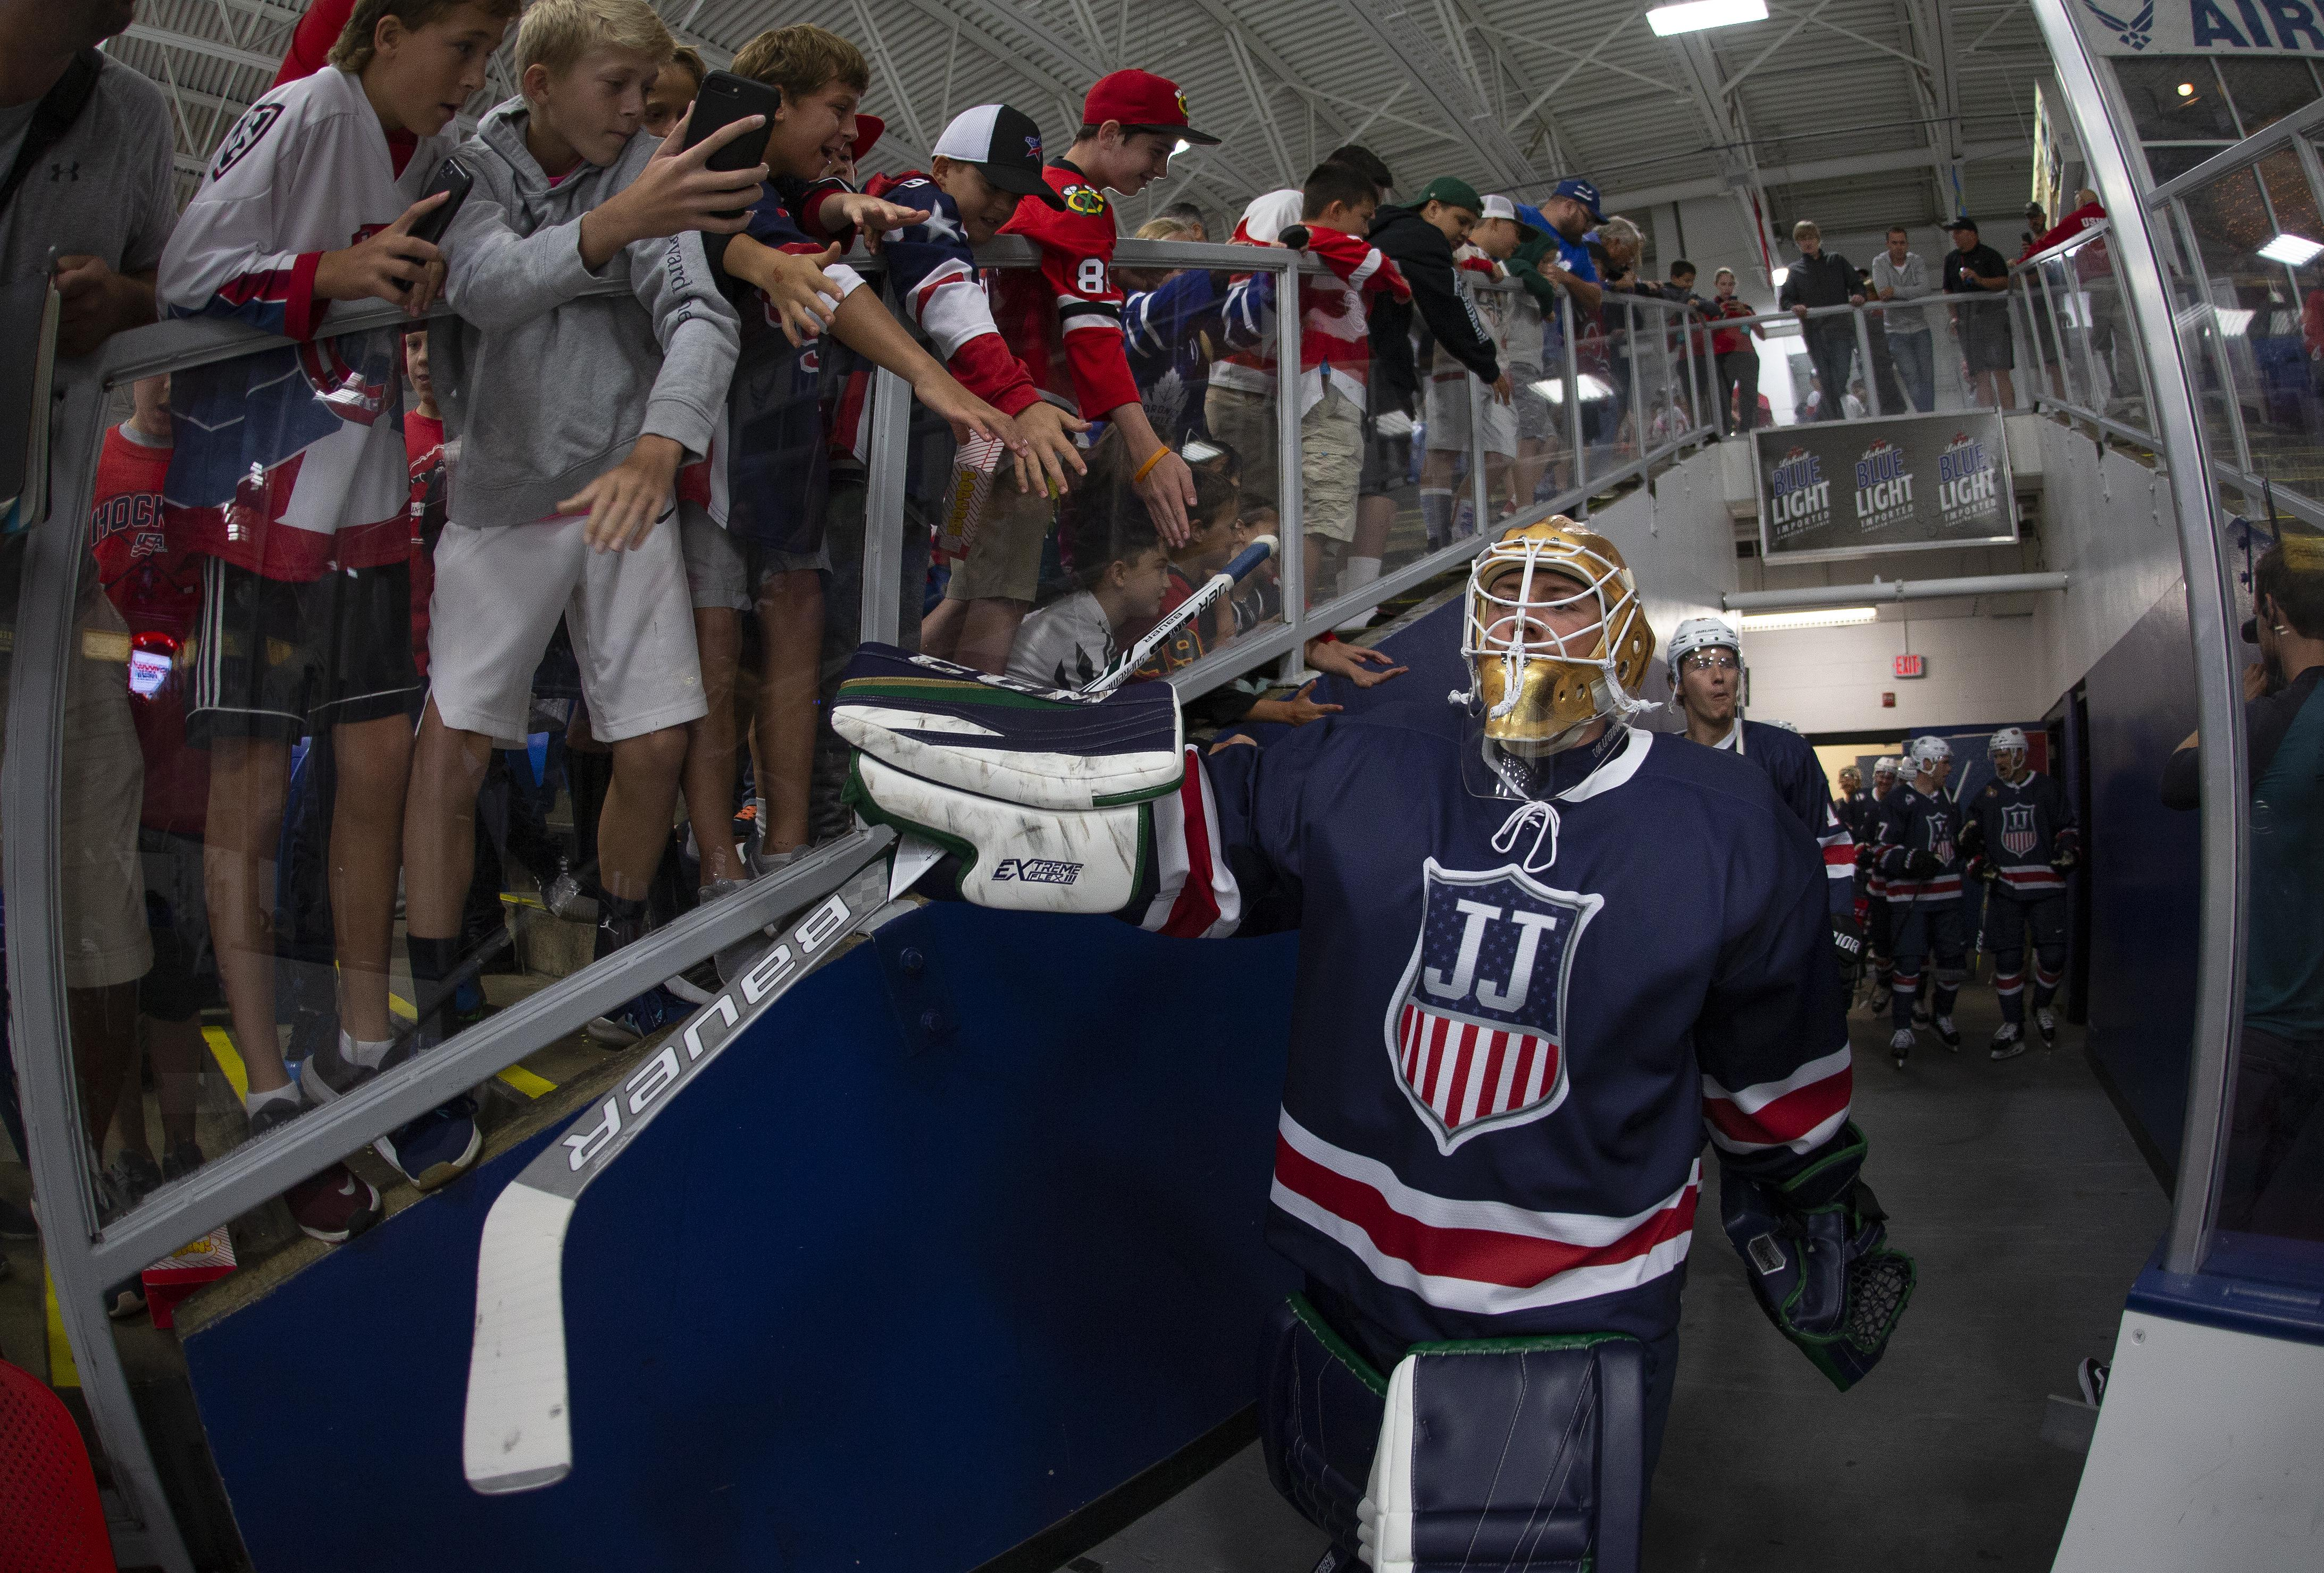 St. Cyr at the Stars and Stripes Showdown at USA Hockey Arena (photo by Rena Laverty)